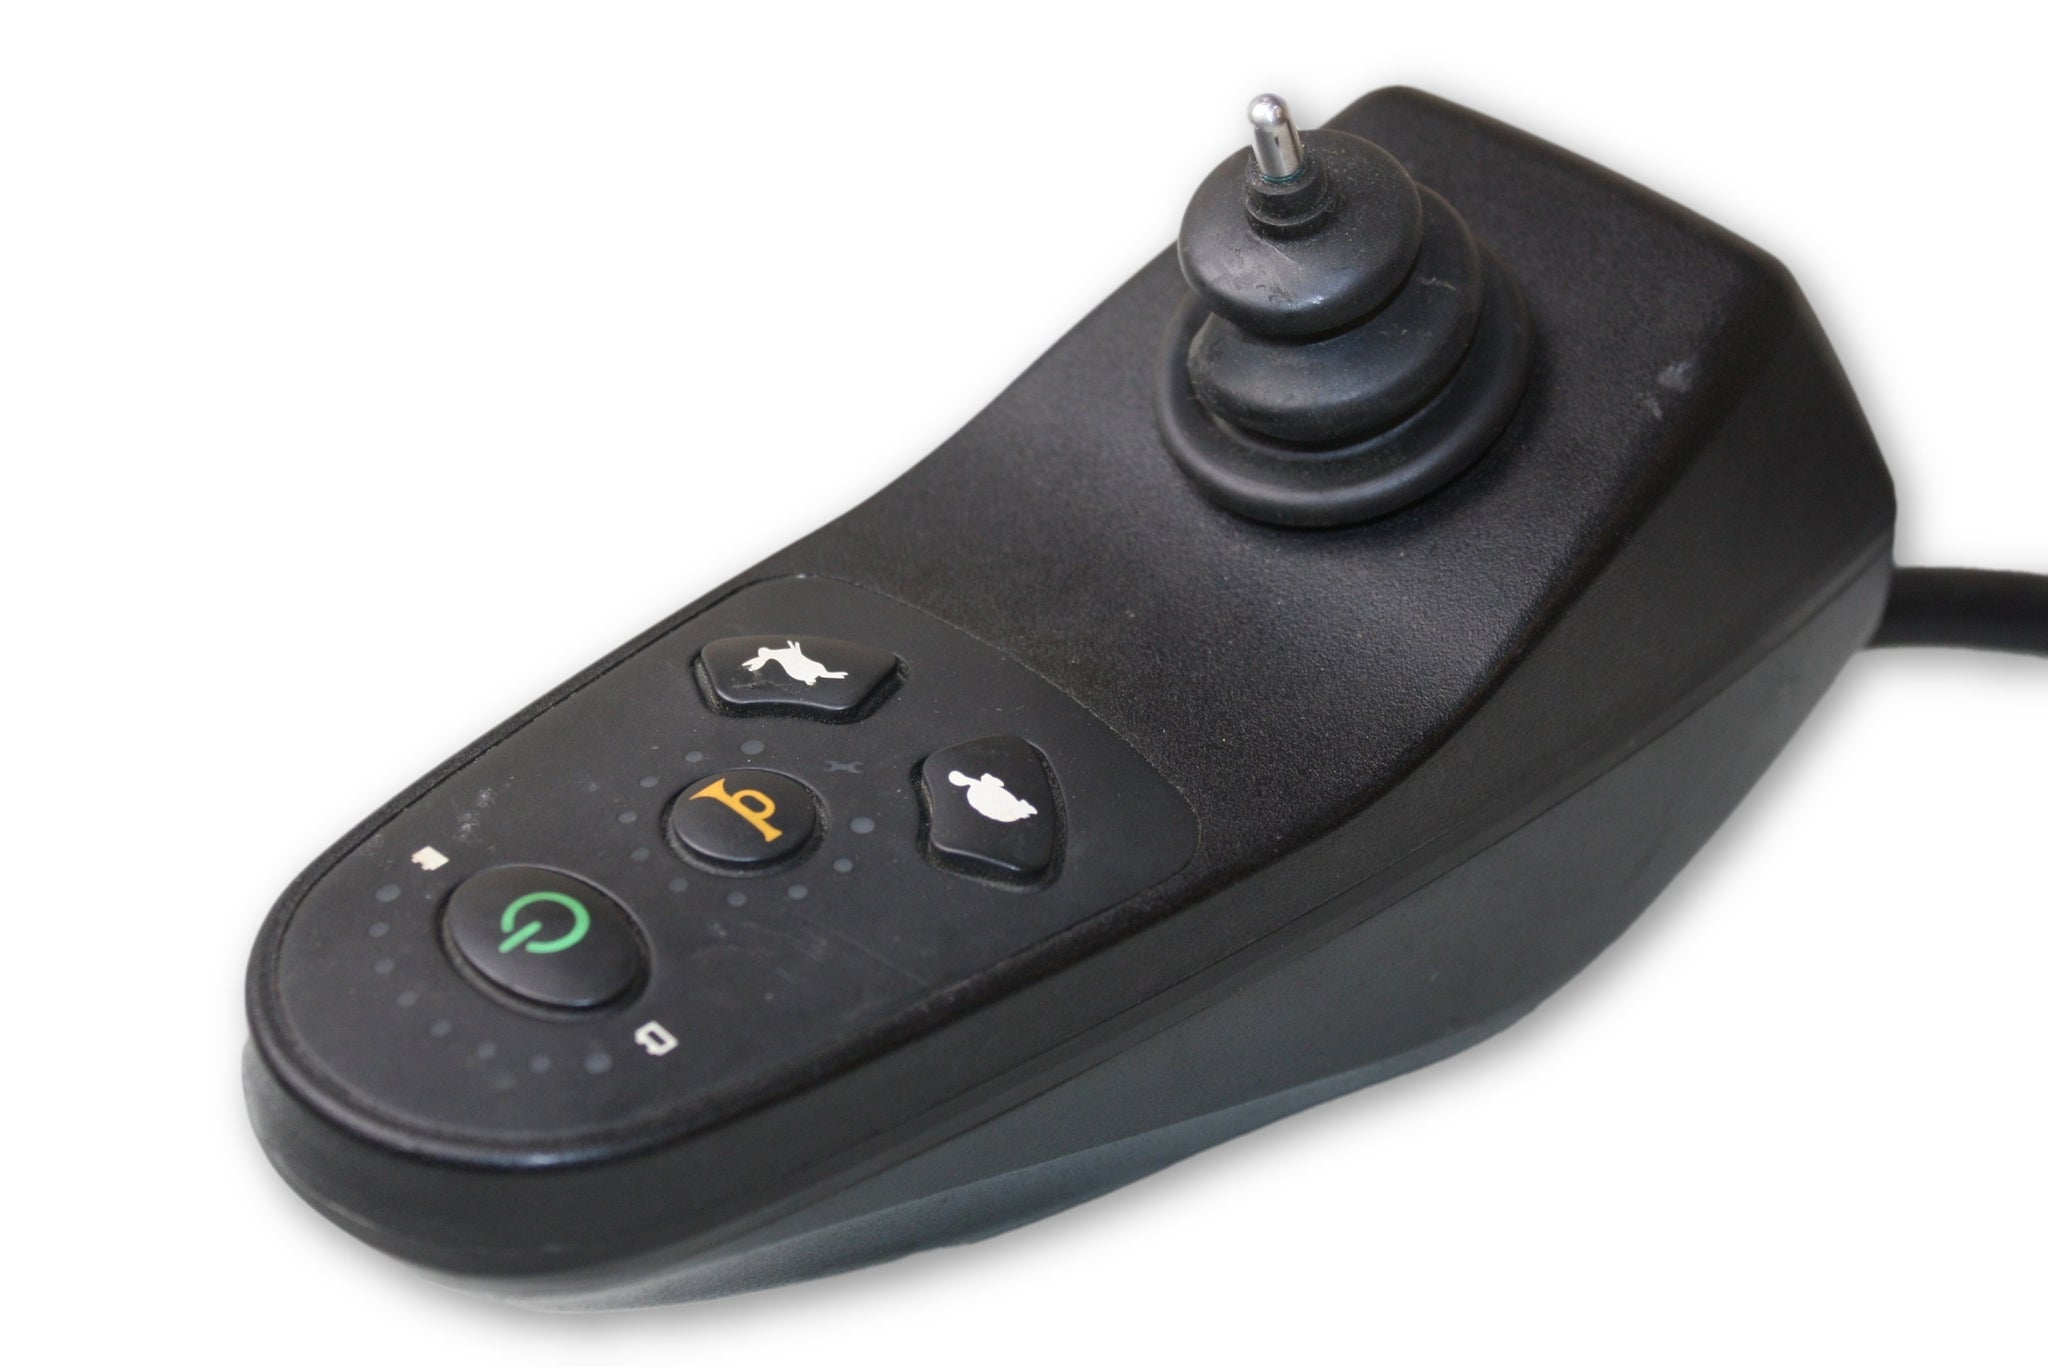 Dynamic A-Series Electric Wheelchair Joystick Controller | Invacare Pronto M41 | DA50-C51